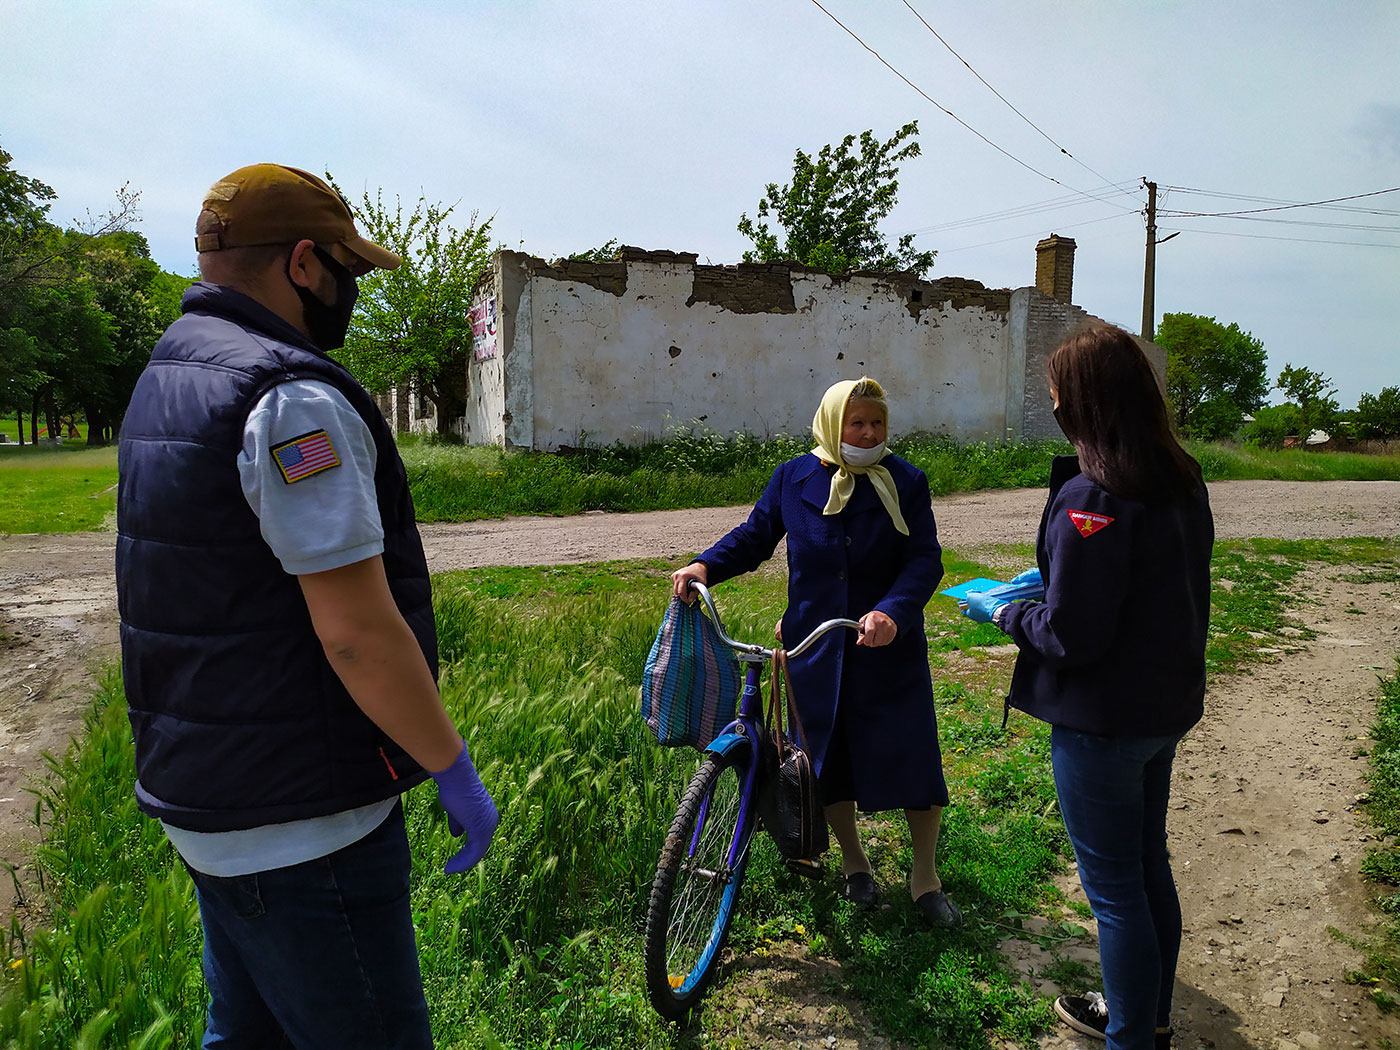 Two staff talking to an old lady with a bike